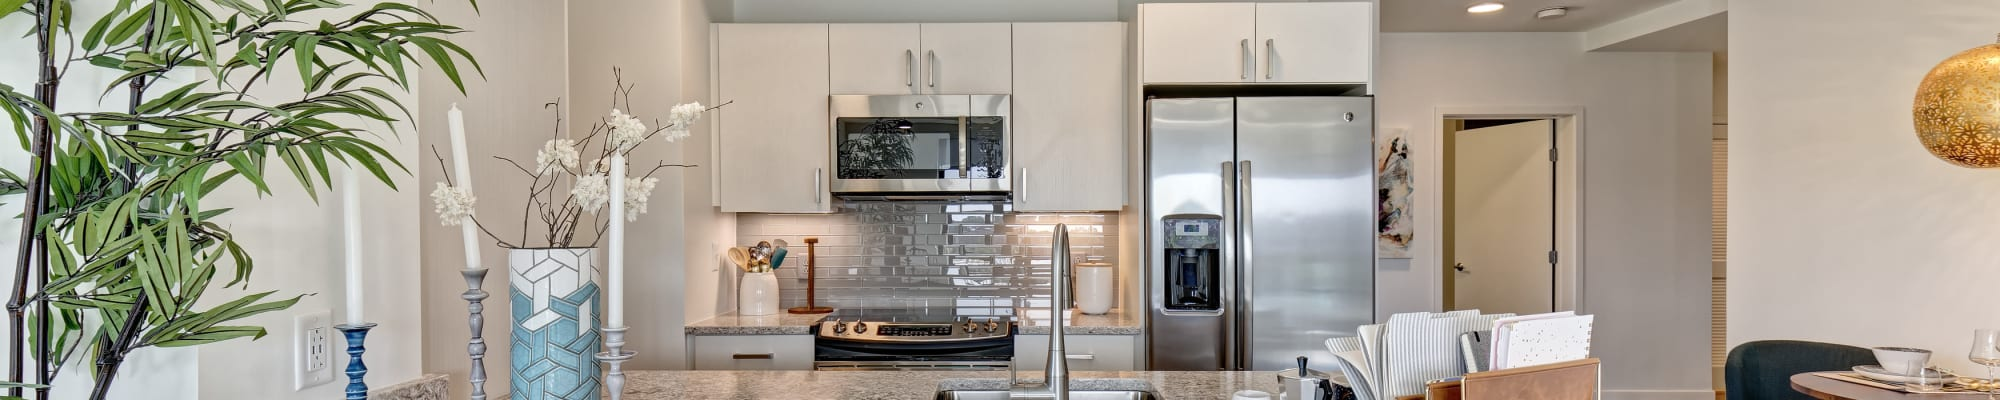 One bedroom apartments at Vela on the Park in Stamford, Connecticut